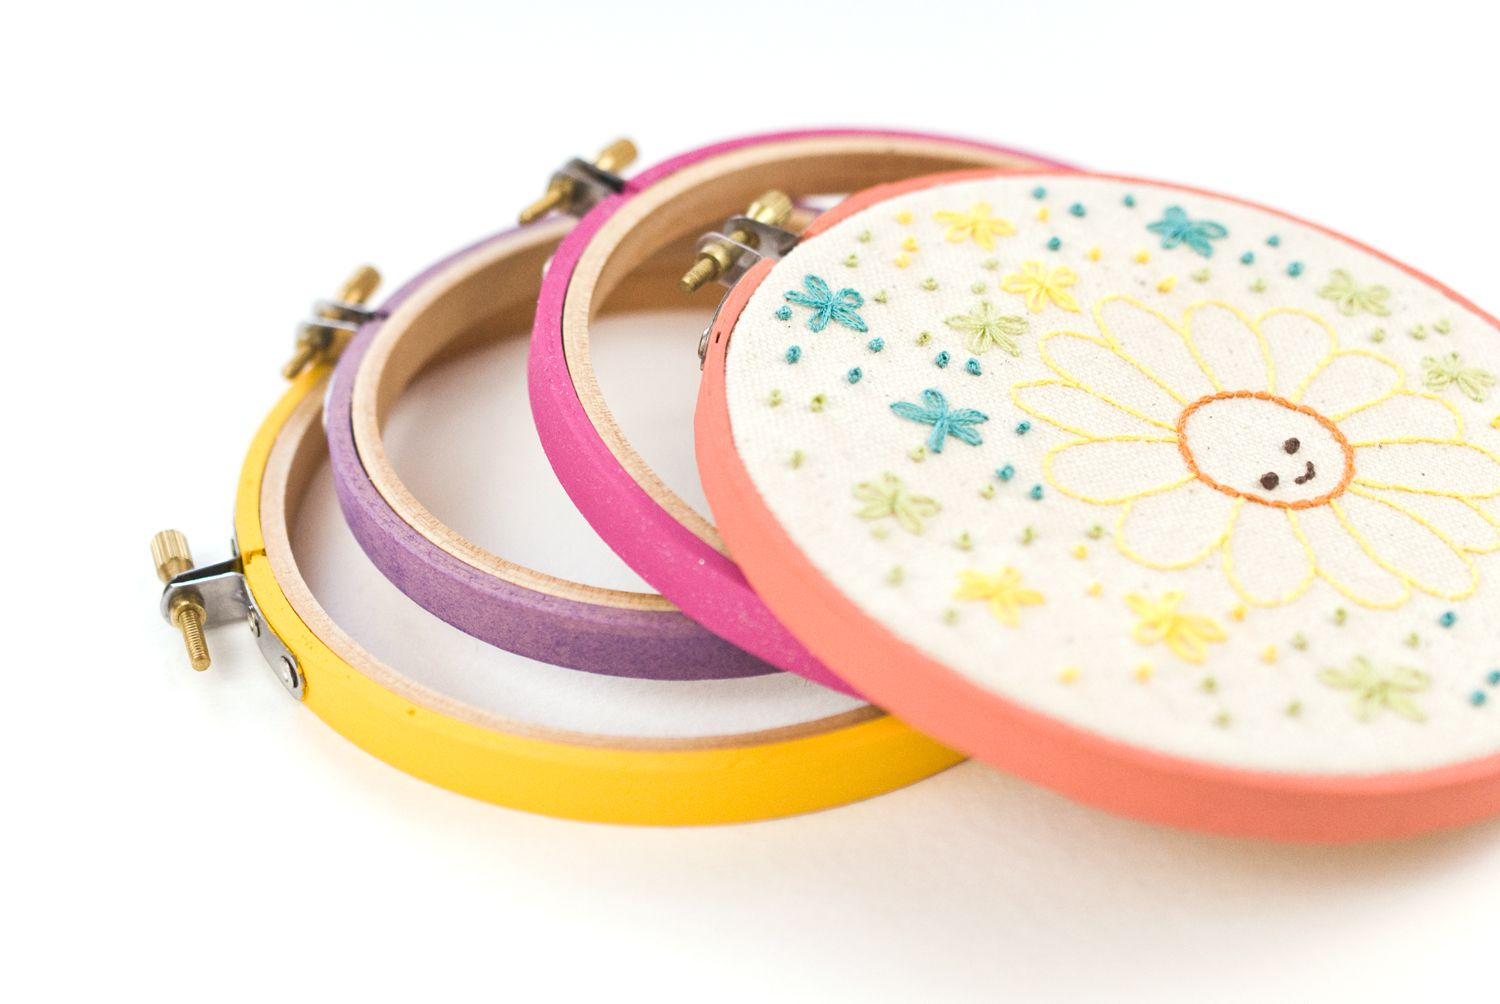 How to paint embroidery hoops for framing